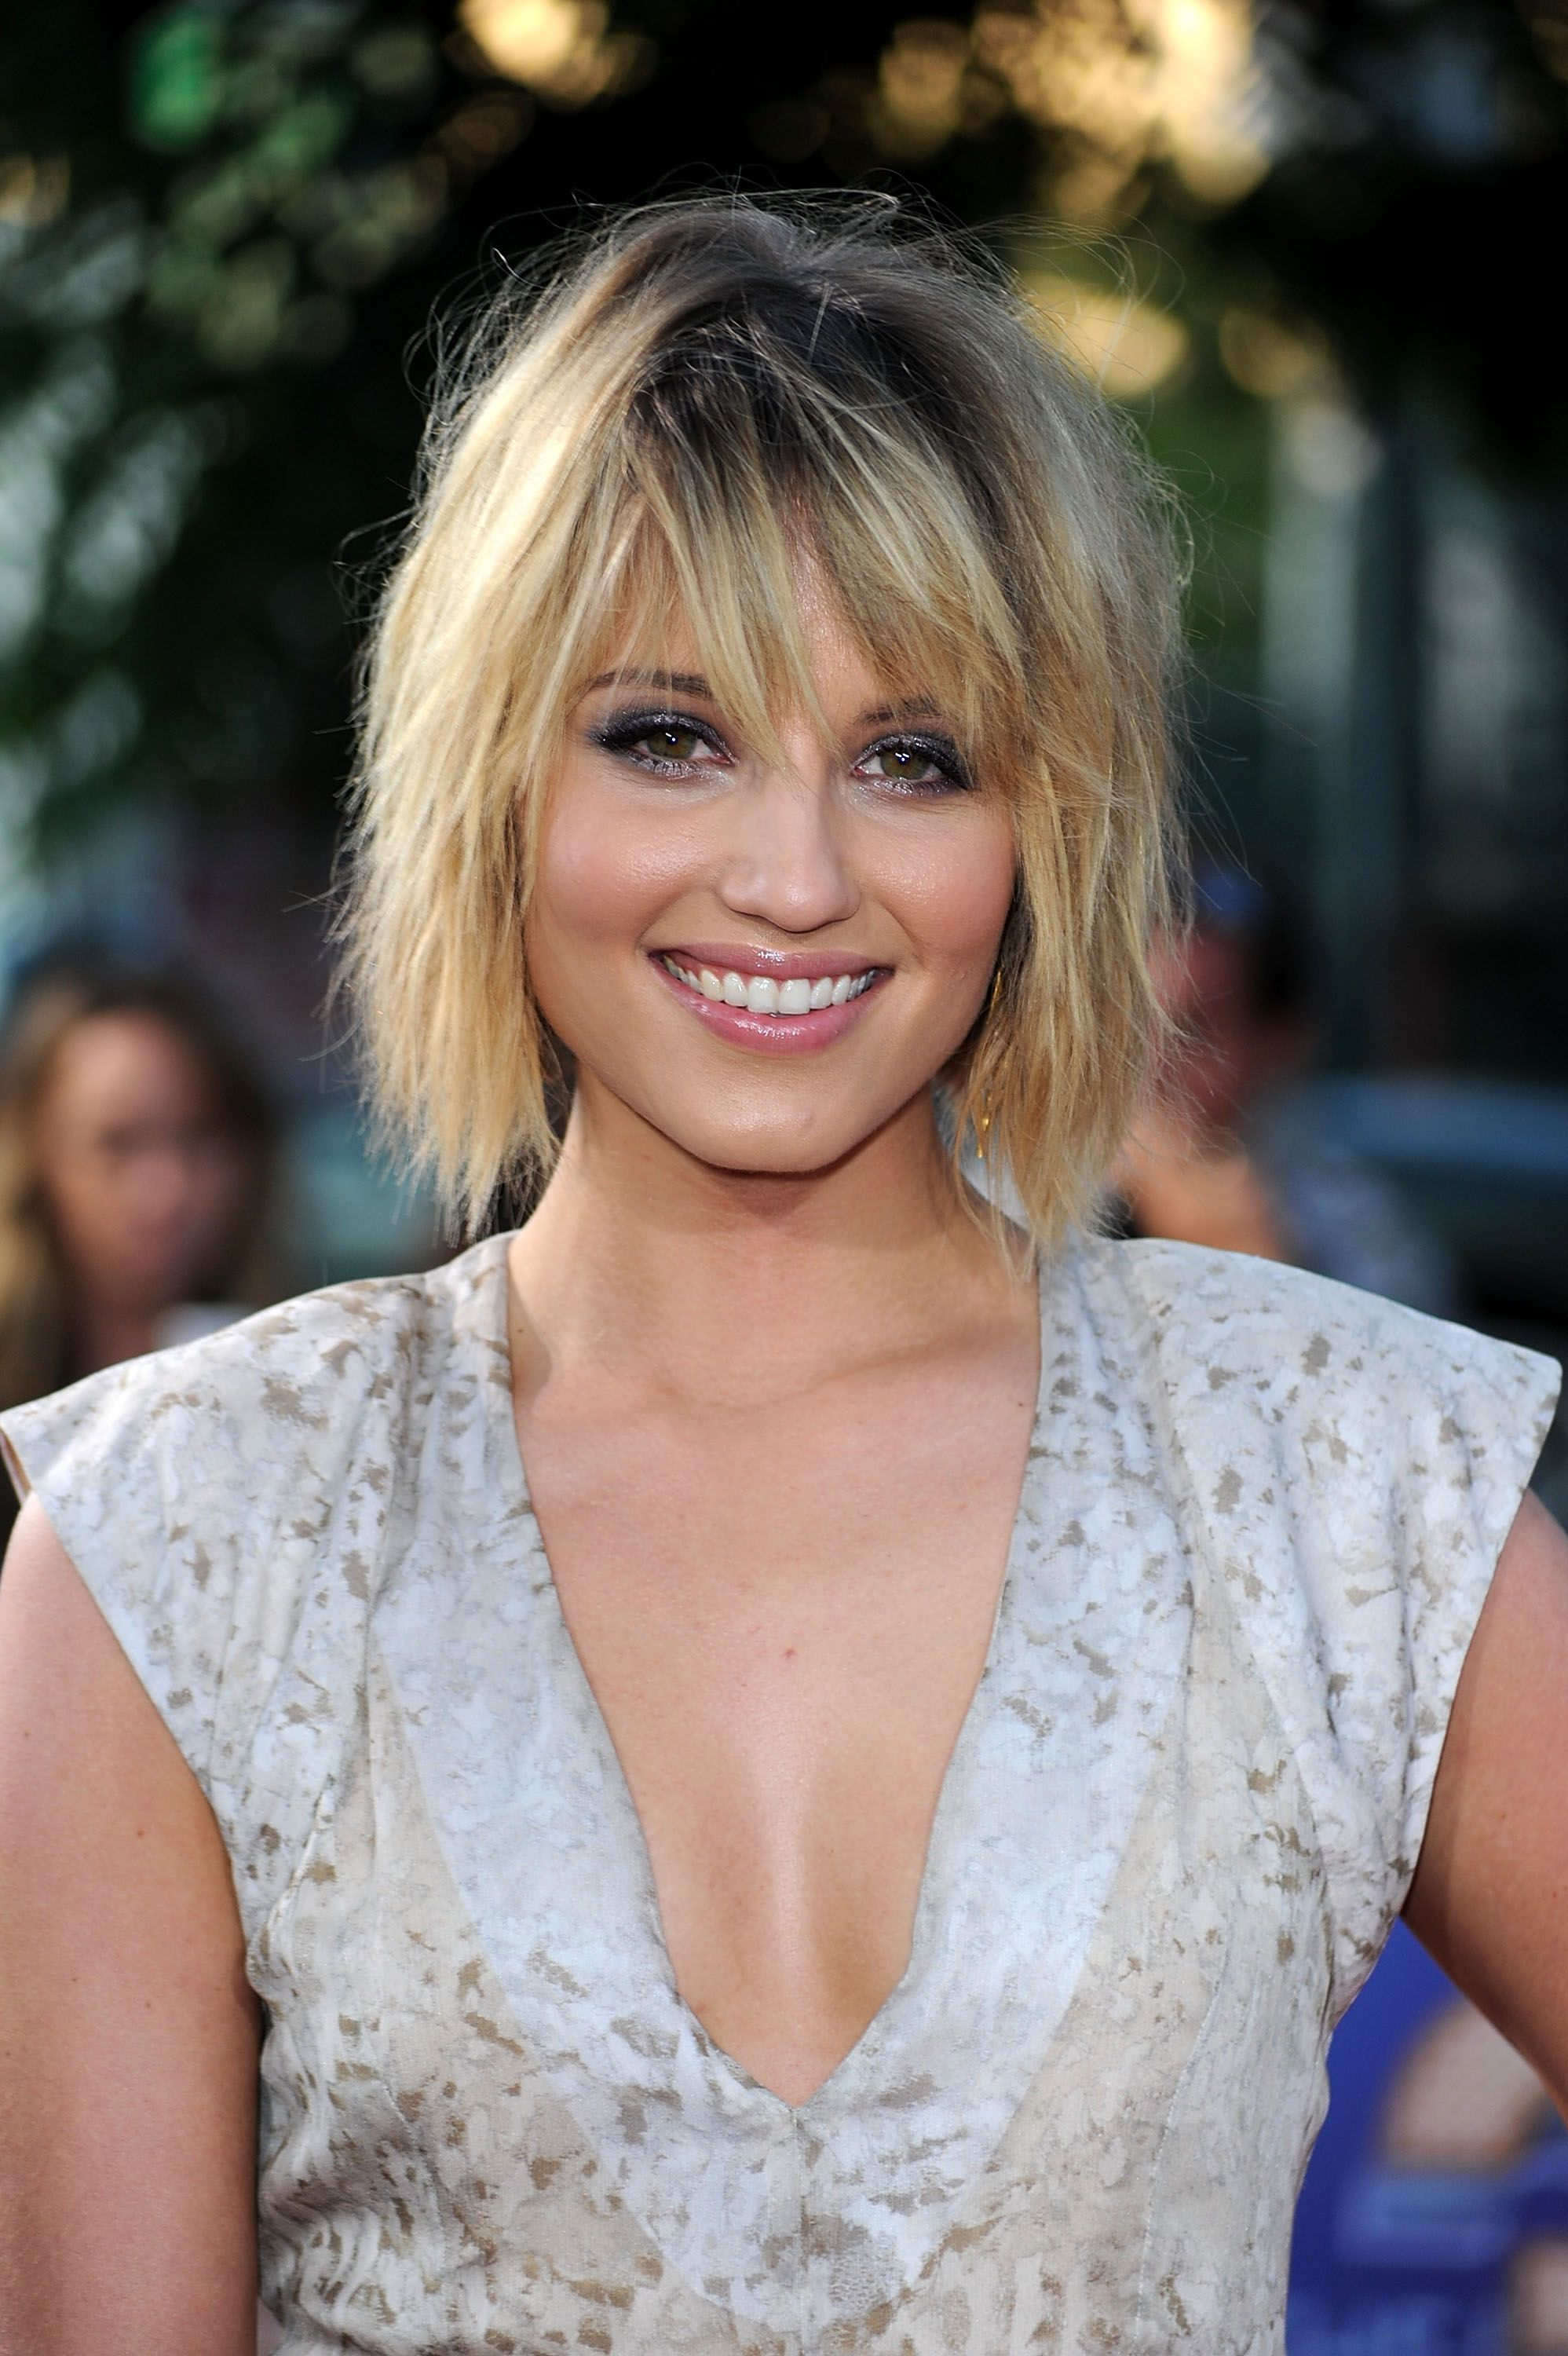 50 best bob styles of 2017 - bob haircuts & hairstyles for women